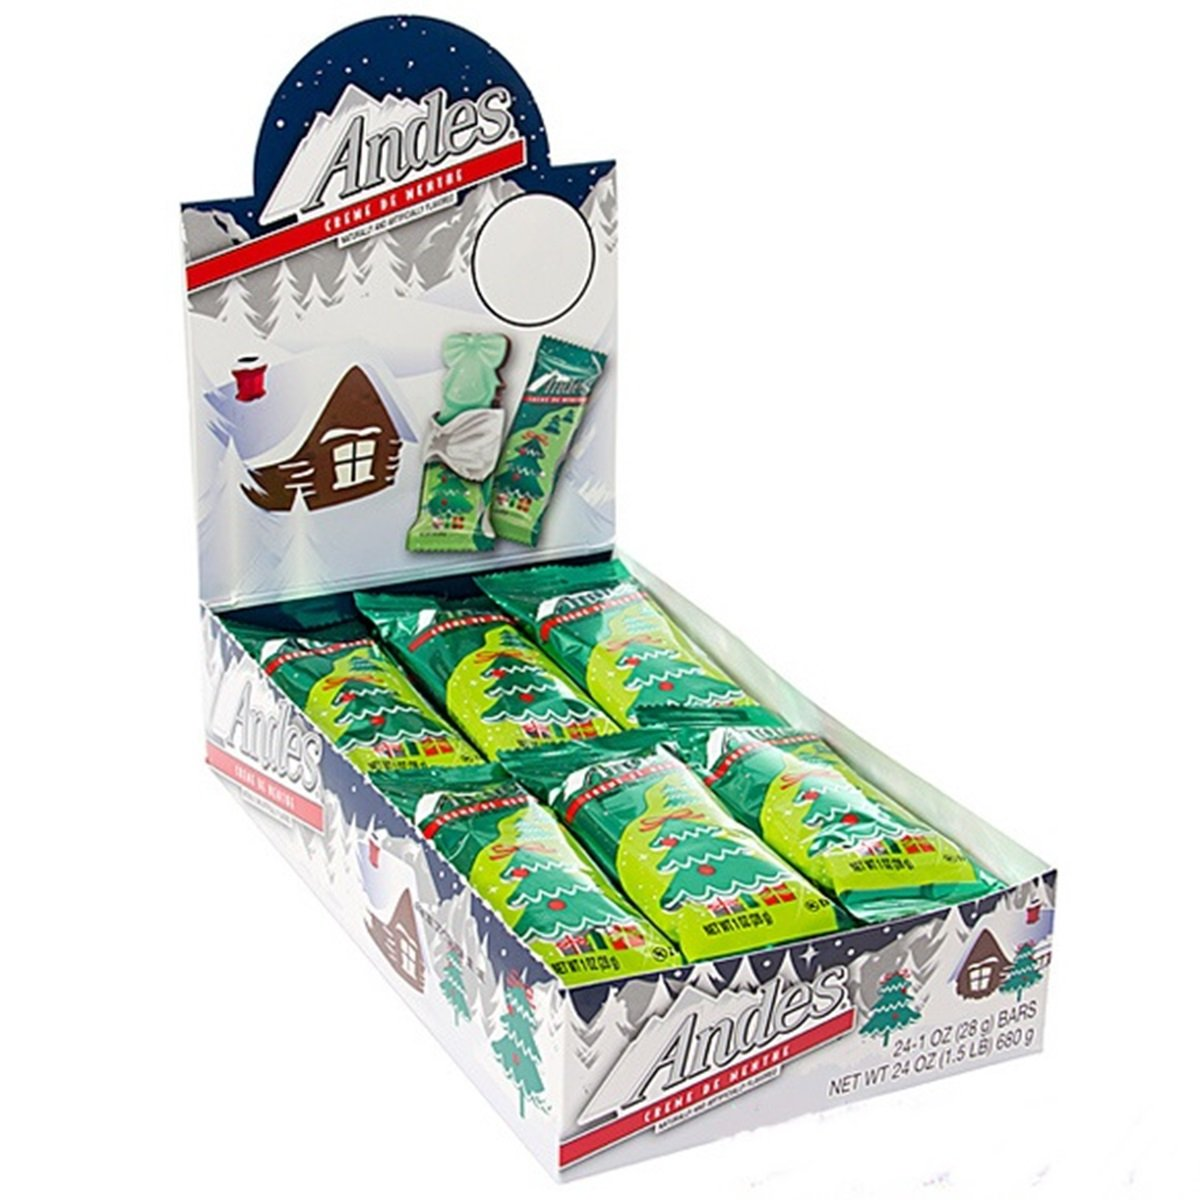 Andes Creme De Menthe Mints Christmas Tree Candy Bars, Pack of 24